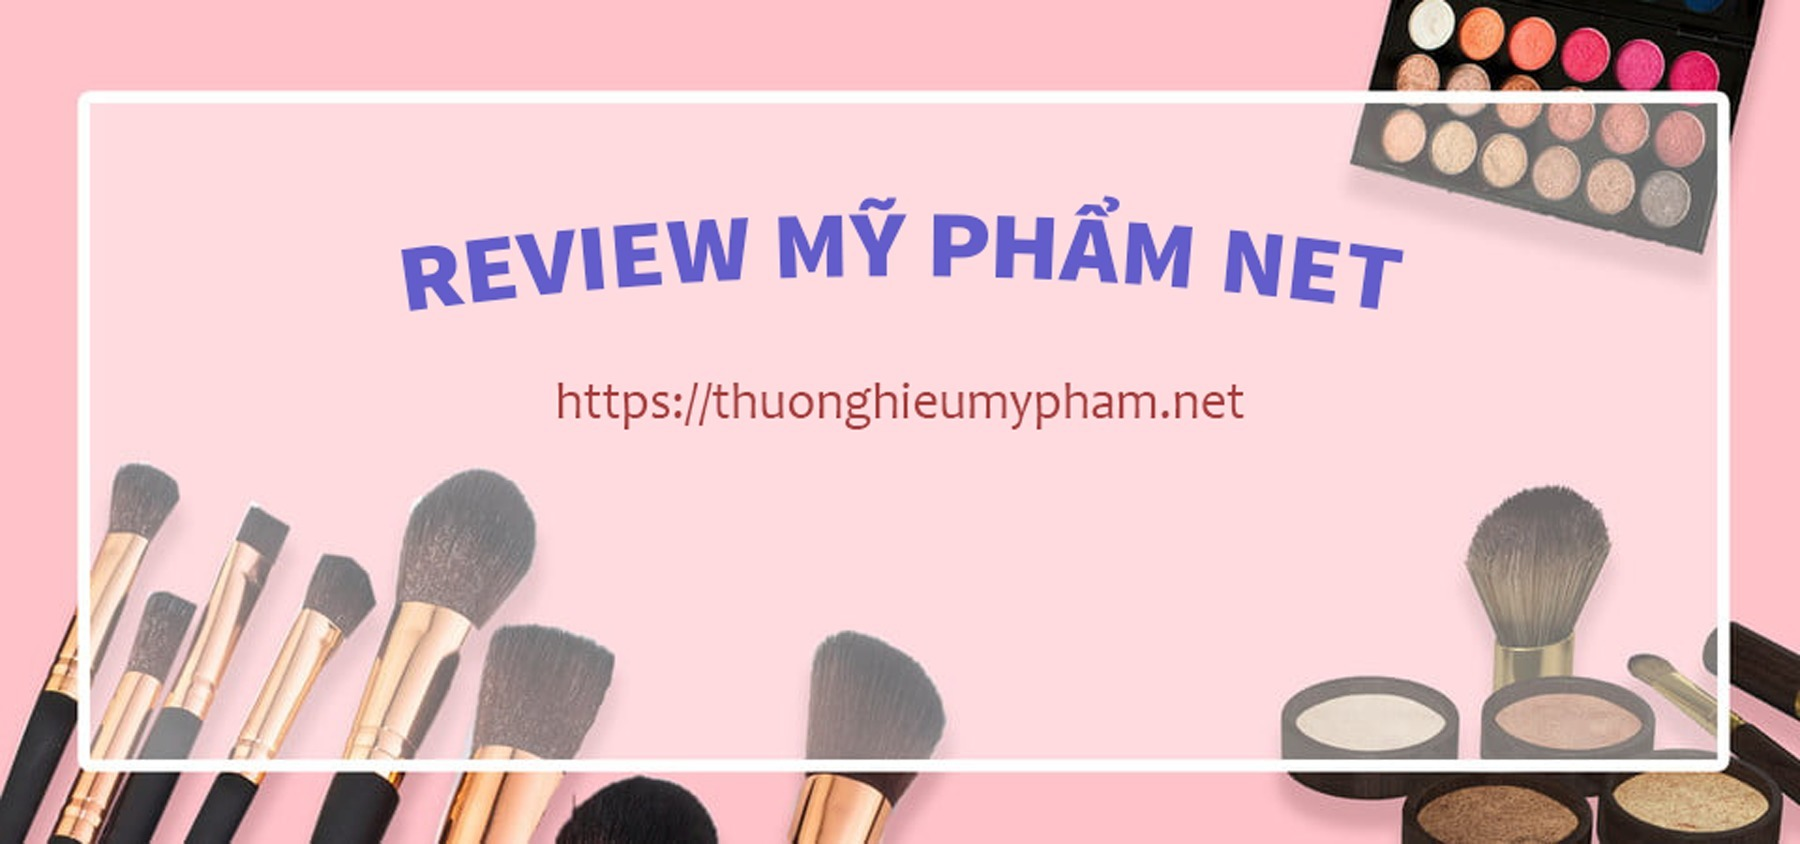 Review Mỹ Phẩm Net (@reviewmyphamnet) Cover Image